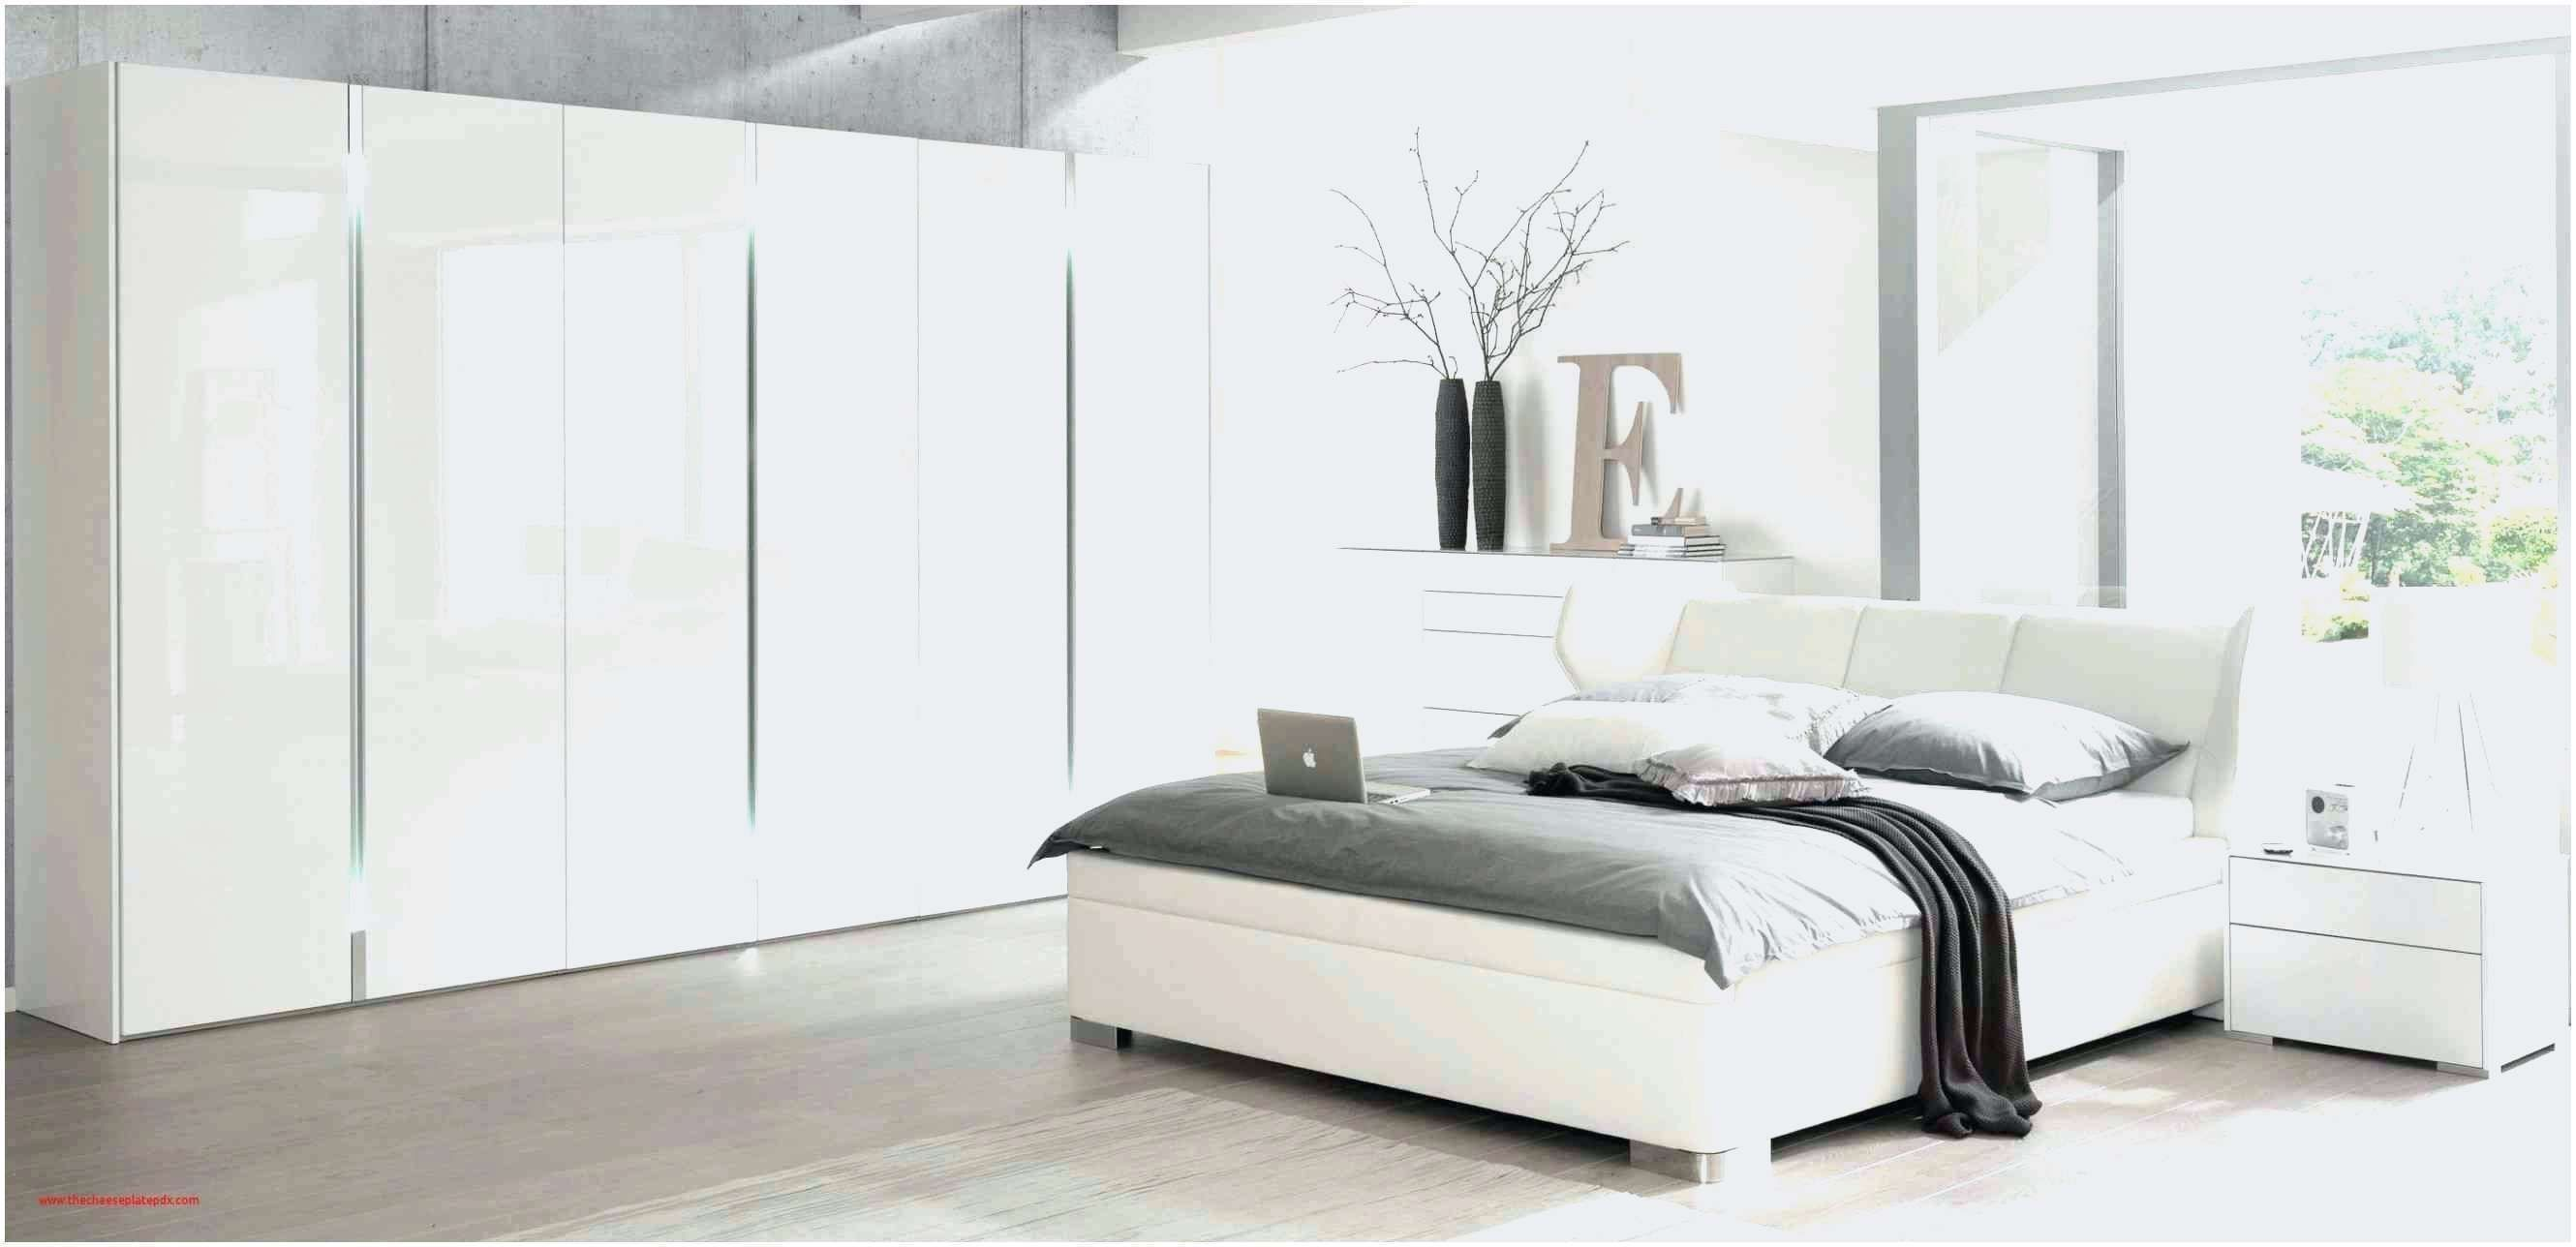 Ikea Family Schlafzimmer Aktion Bedroom Furnishings Luxurious Bedrooms Ikea Living Room